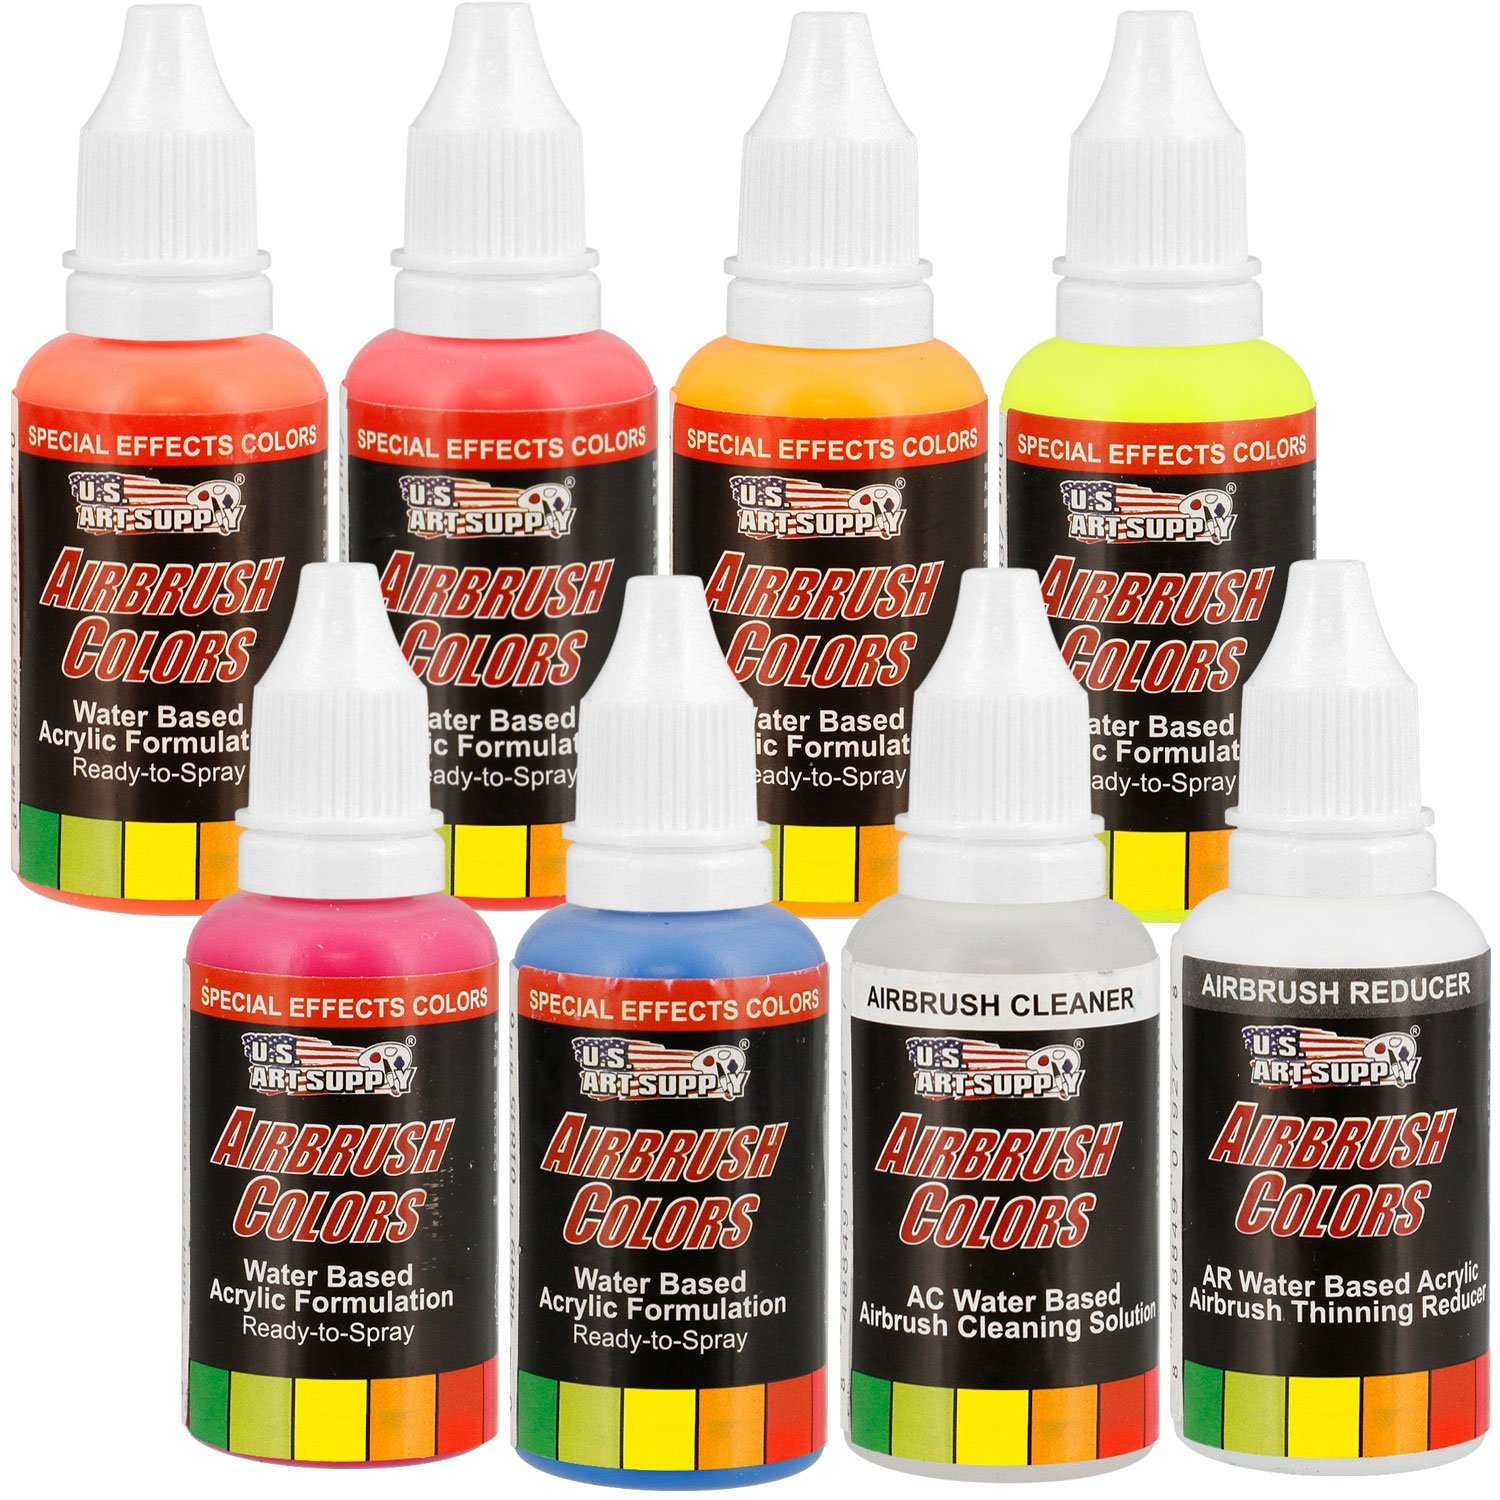 U.S. Art Supply 6 Color Fluorescent Acrylic Neon Colors Airbrush, Leather & Shoe Paint Set with Reducer & Cleaner 1 oz. Bottles